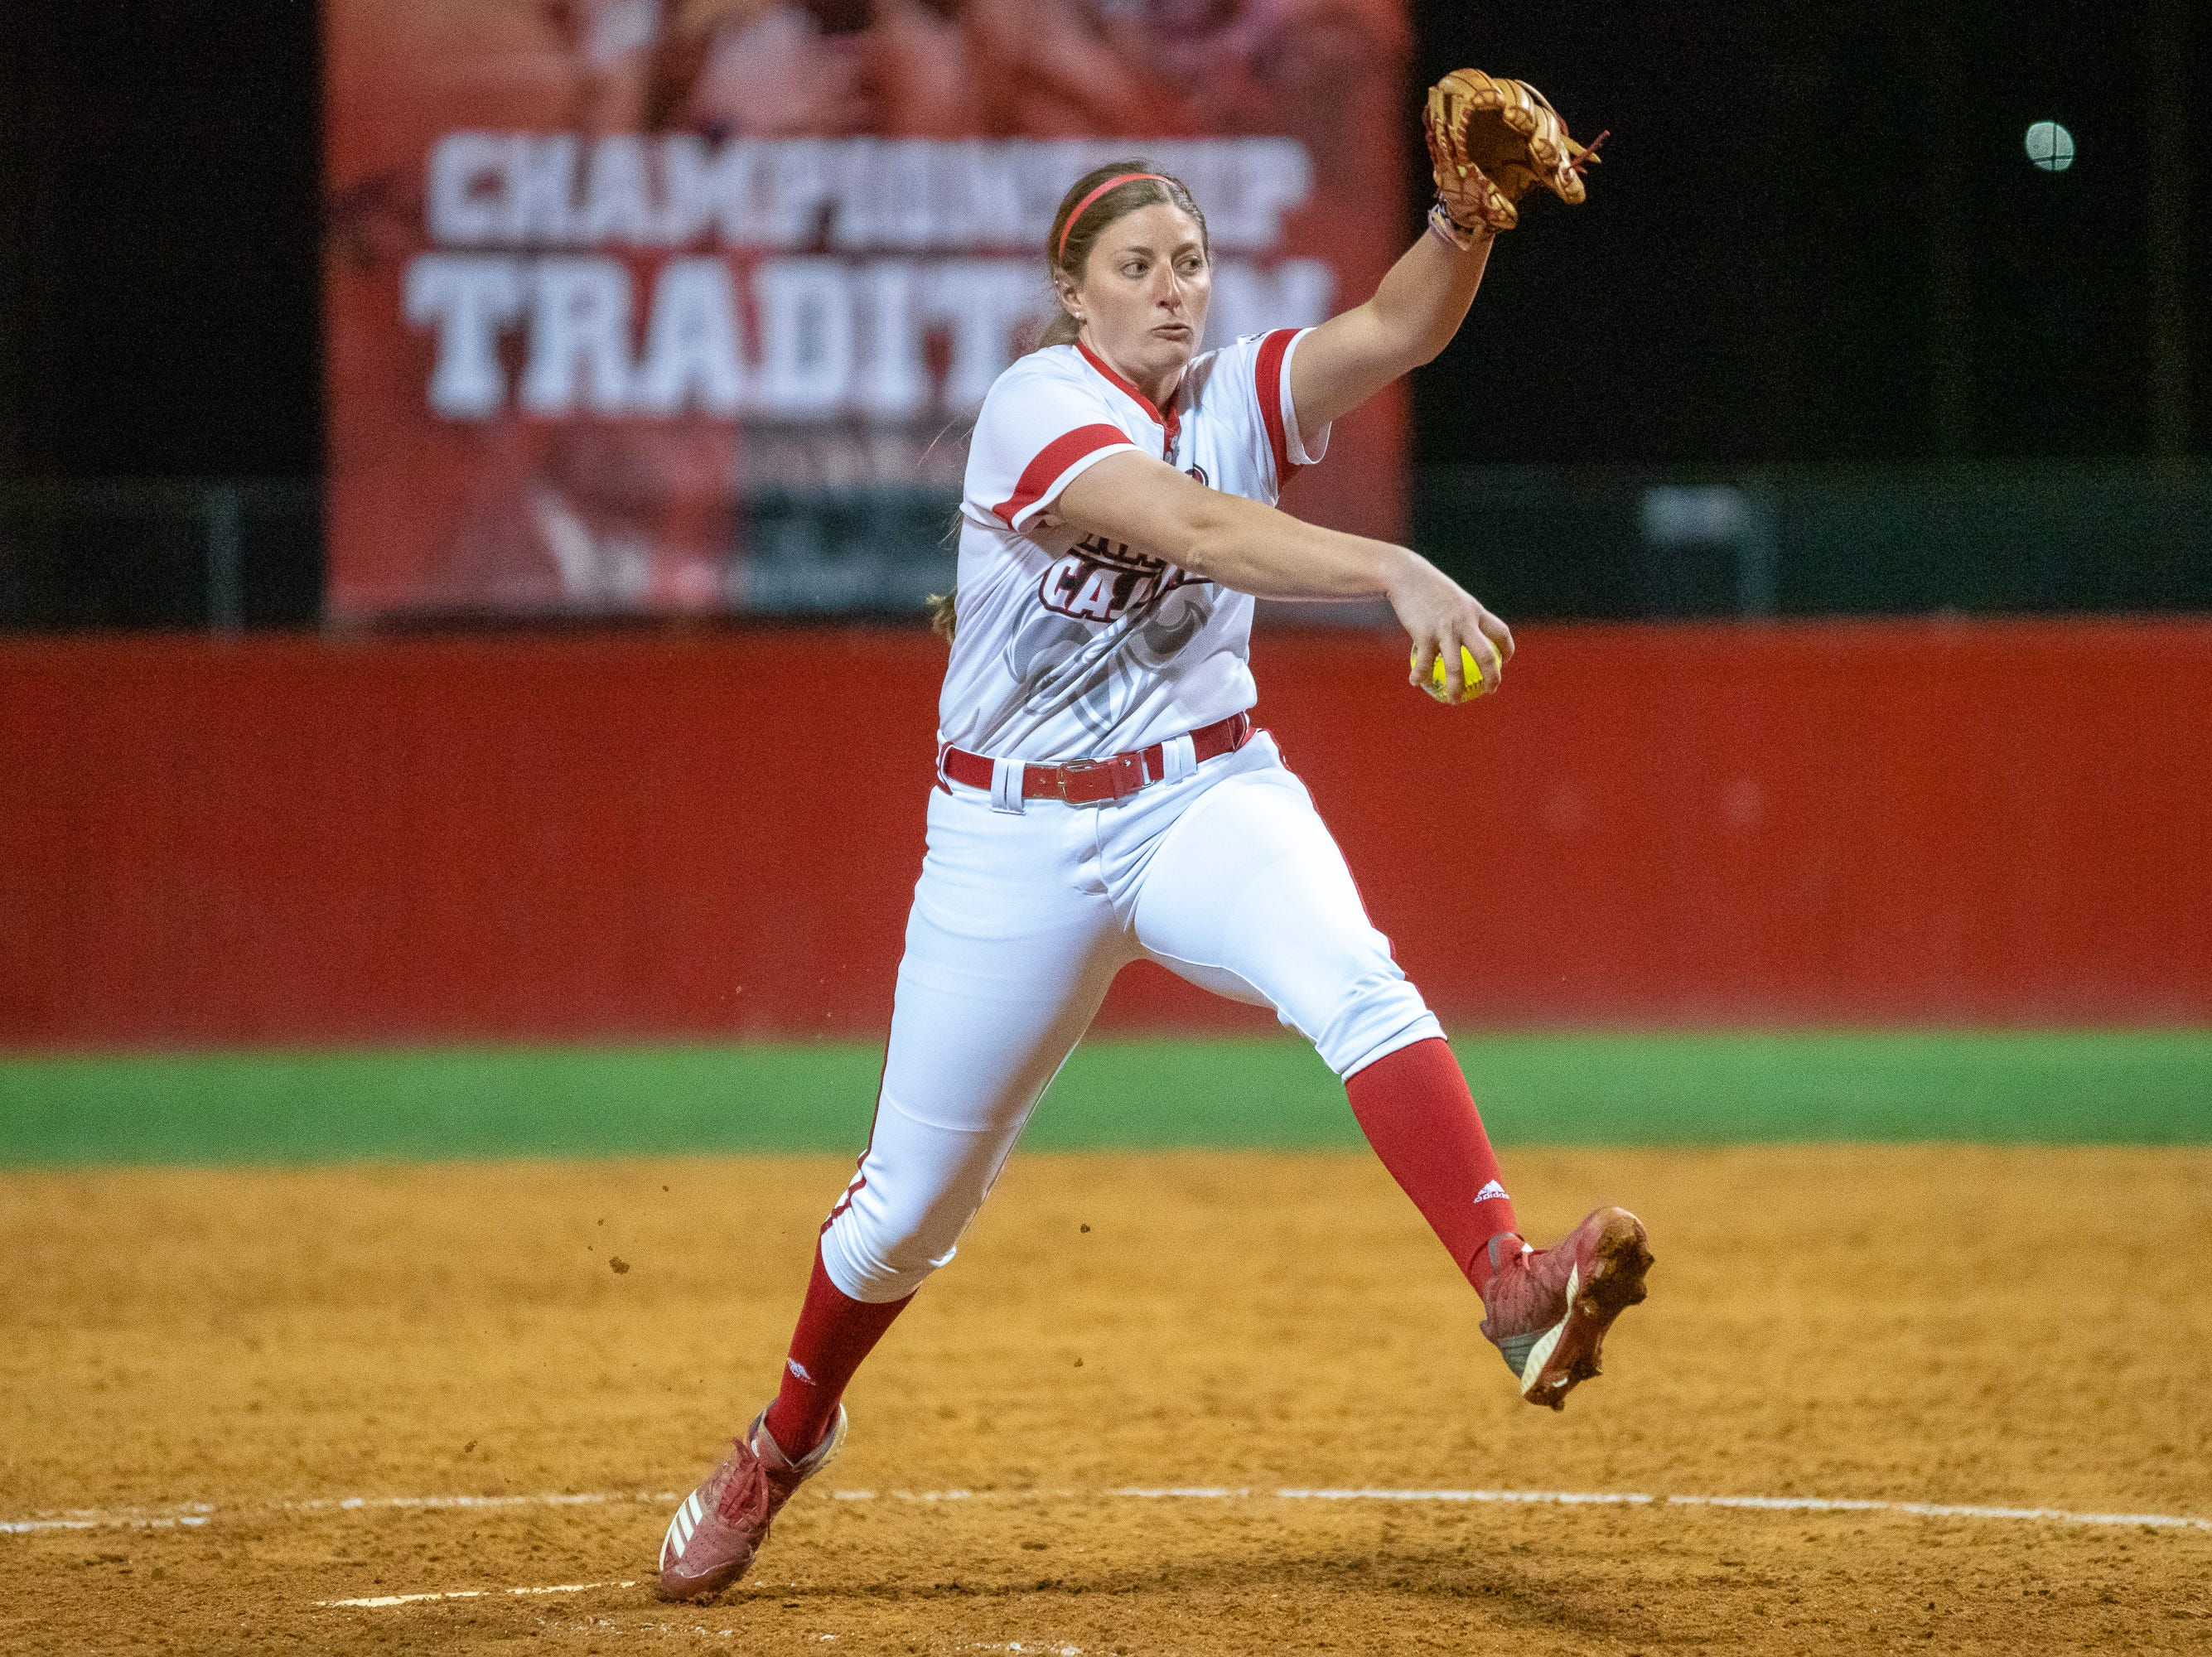 UL's Carrie Boswell pitches from the circle as the Ragin' Cajuns take on the Troy Trojans at Lamson Park, Yvette Girouard Field on Friday, March 15, 2019.